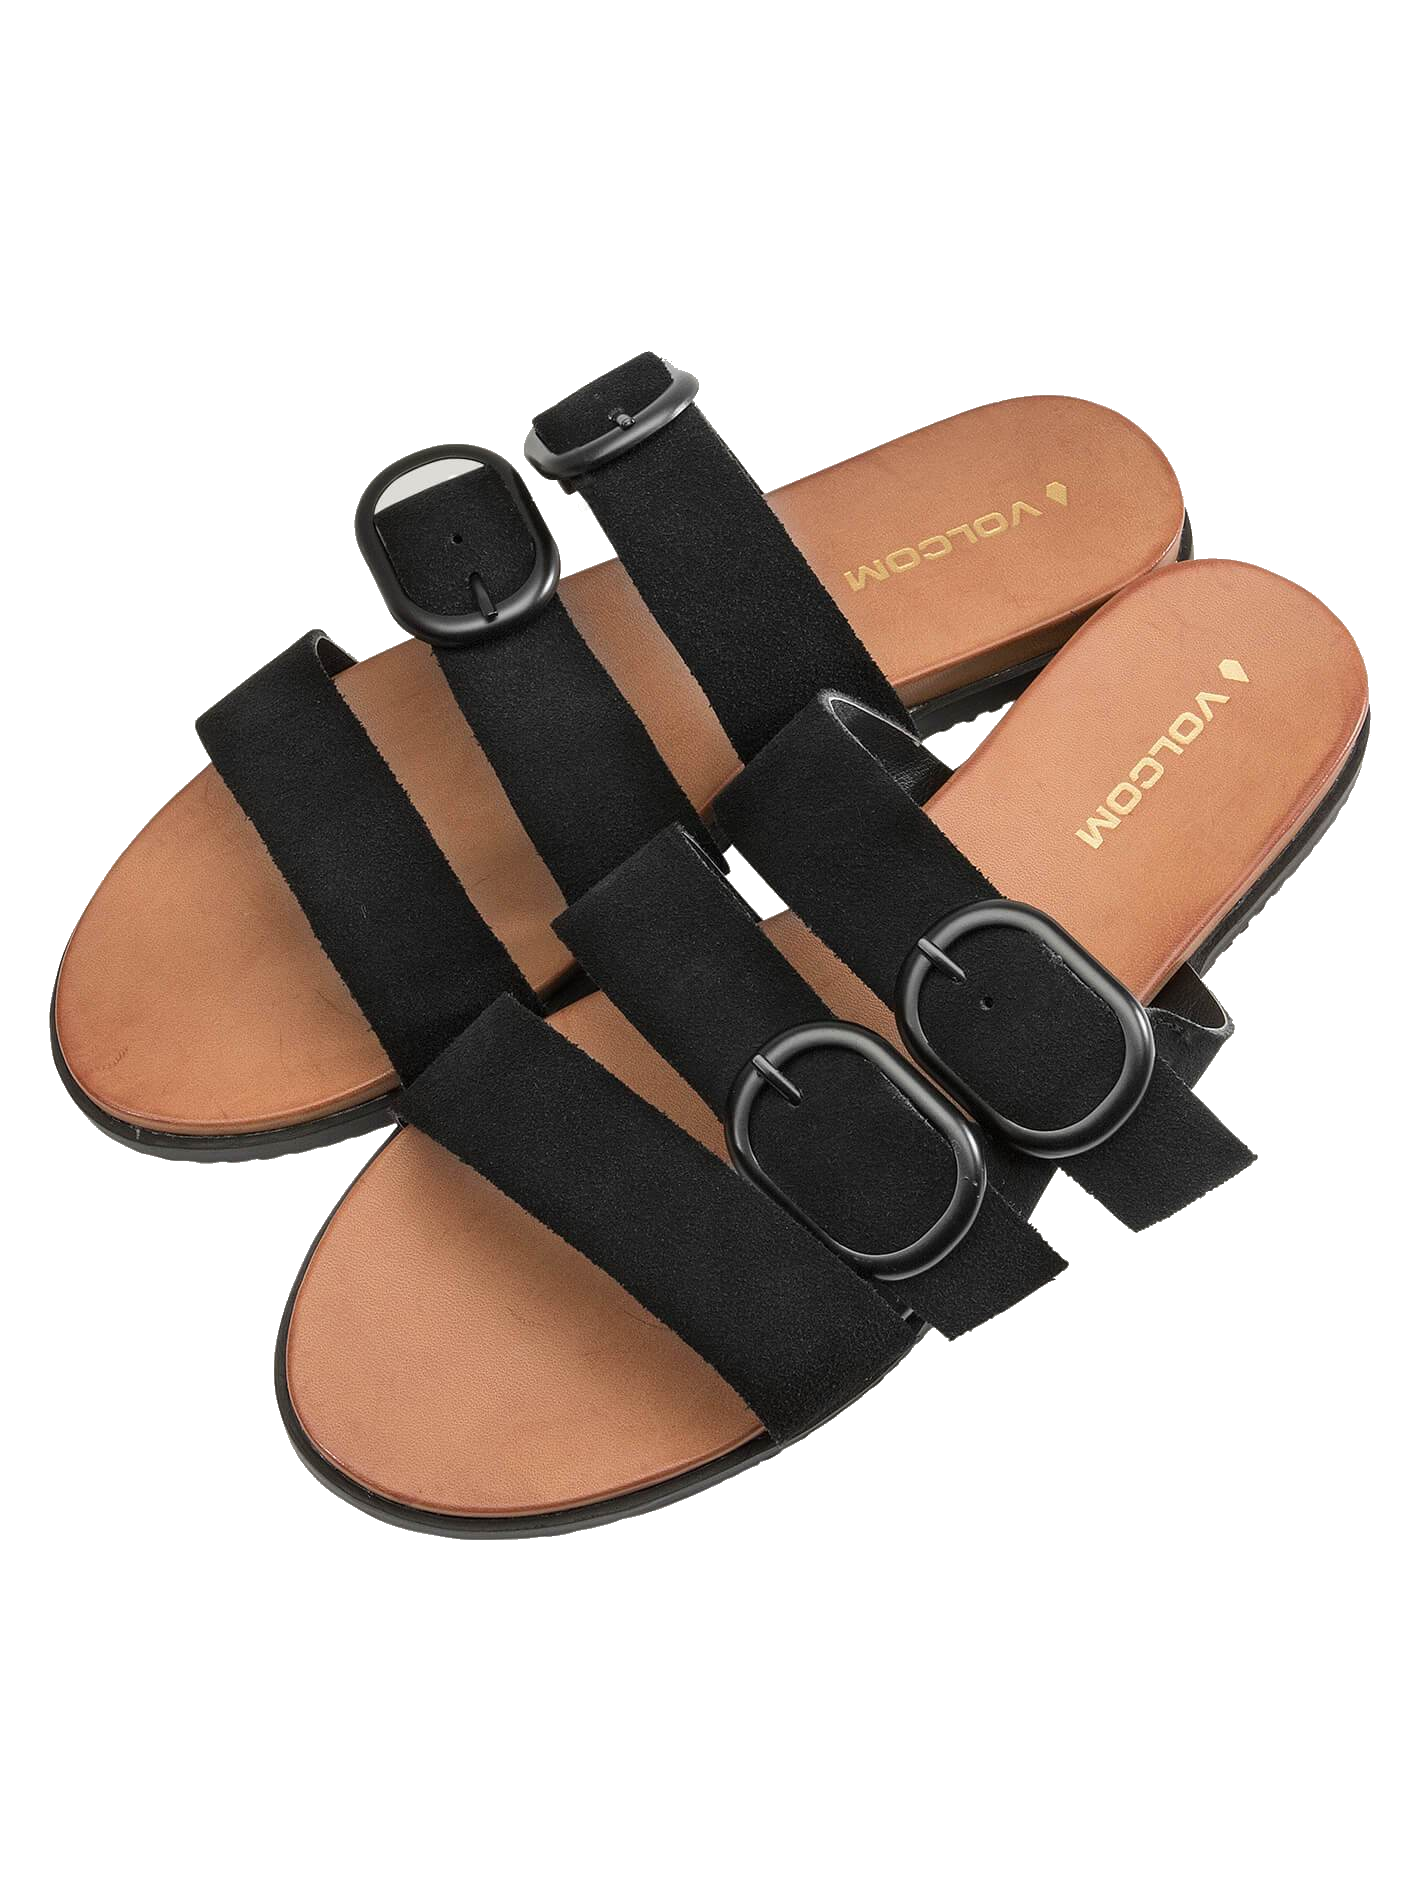 Volcom Buckle Up Buttercup Sandals - 88 Gear